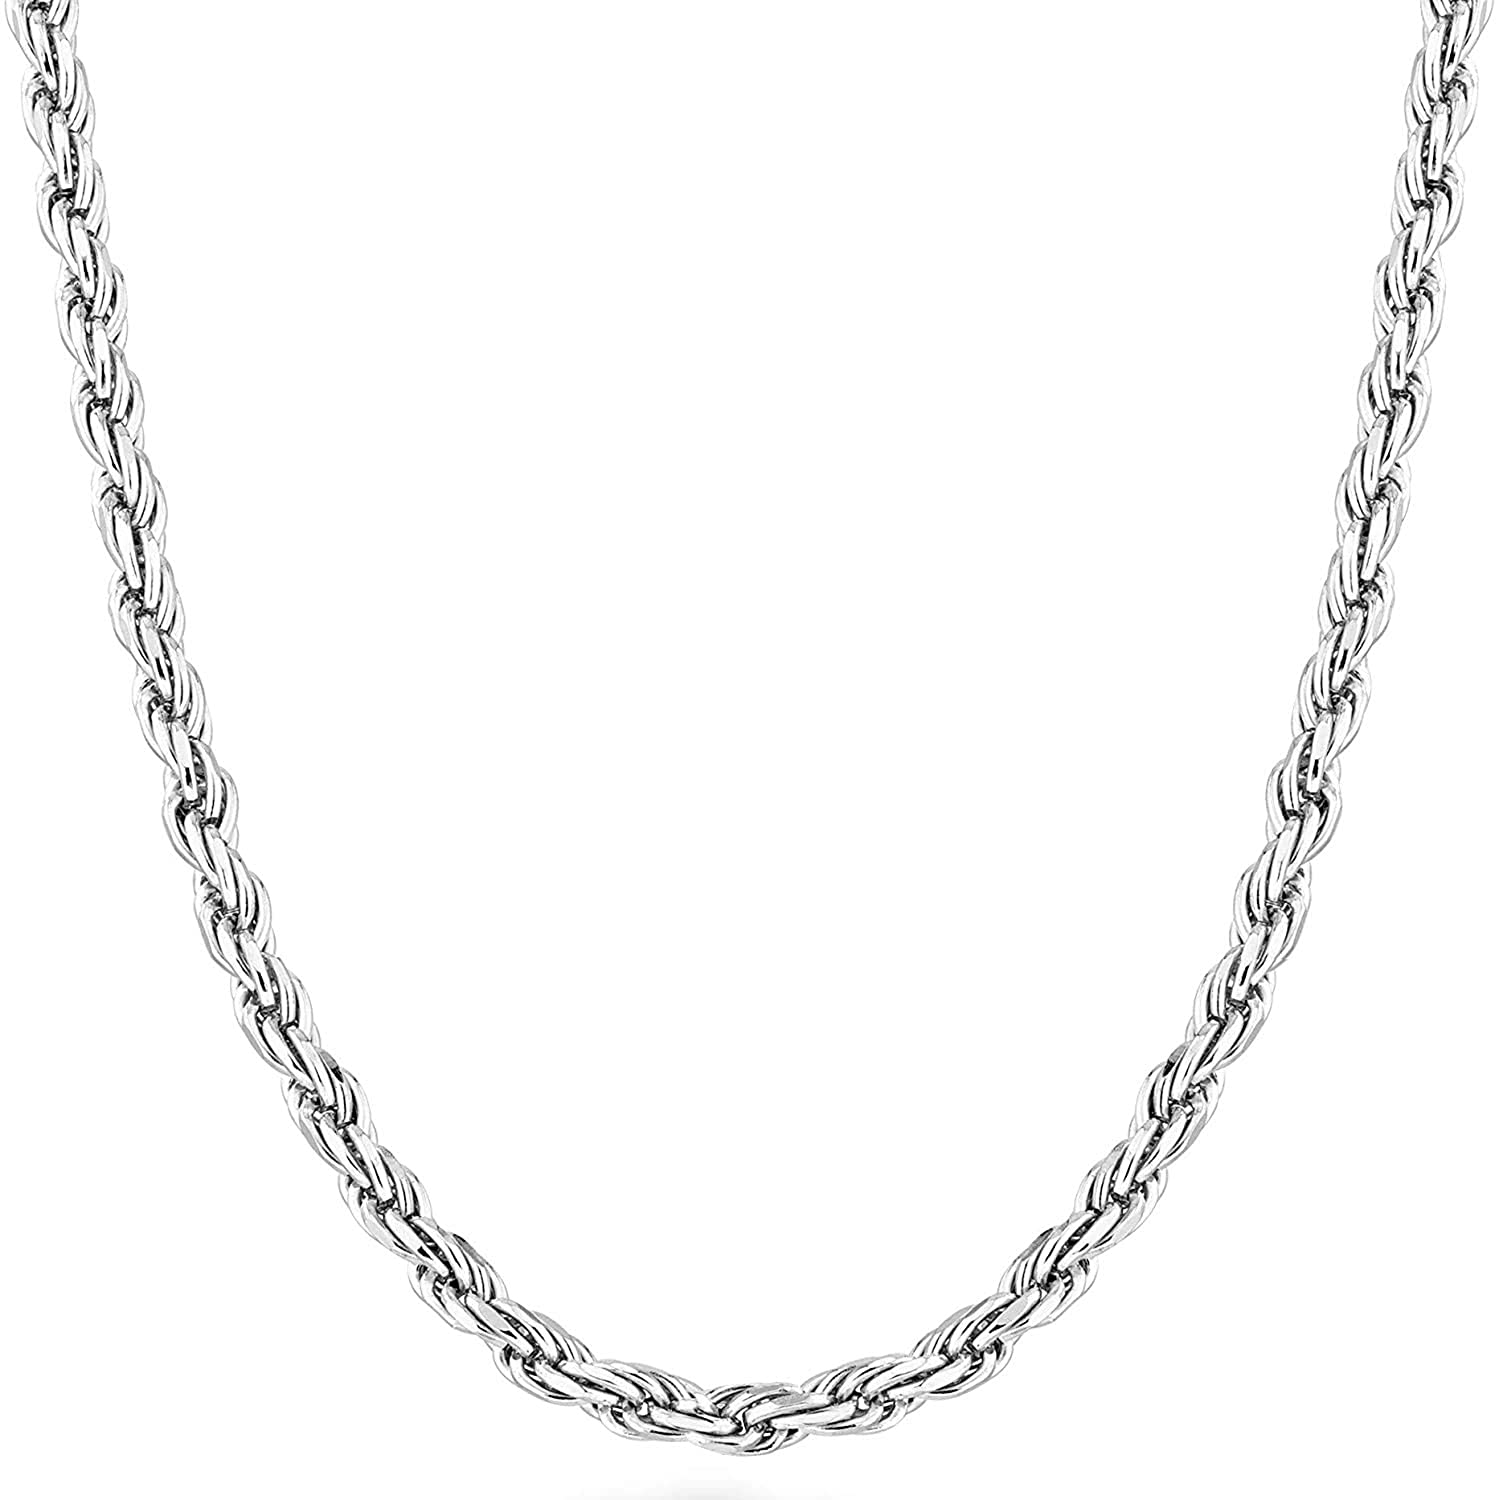 Savlano 925 Sterling Silver 3.5mm Solid Italian Rope Diamond Cut Twist Link Chain Necklace With Gift Box For Men & Women - Made in Italy